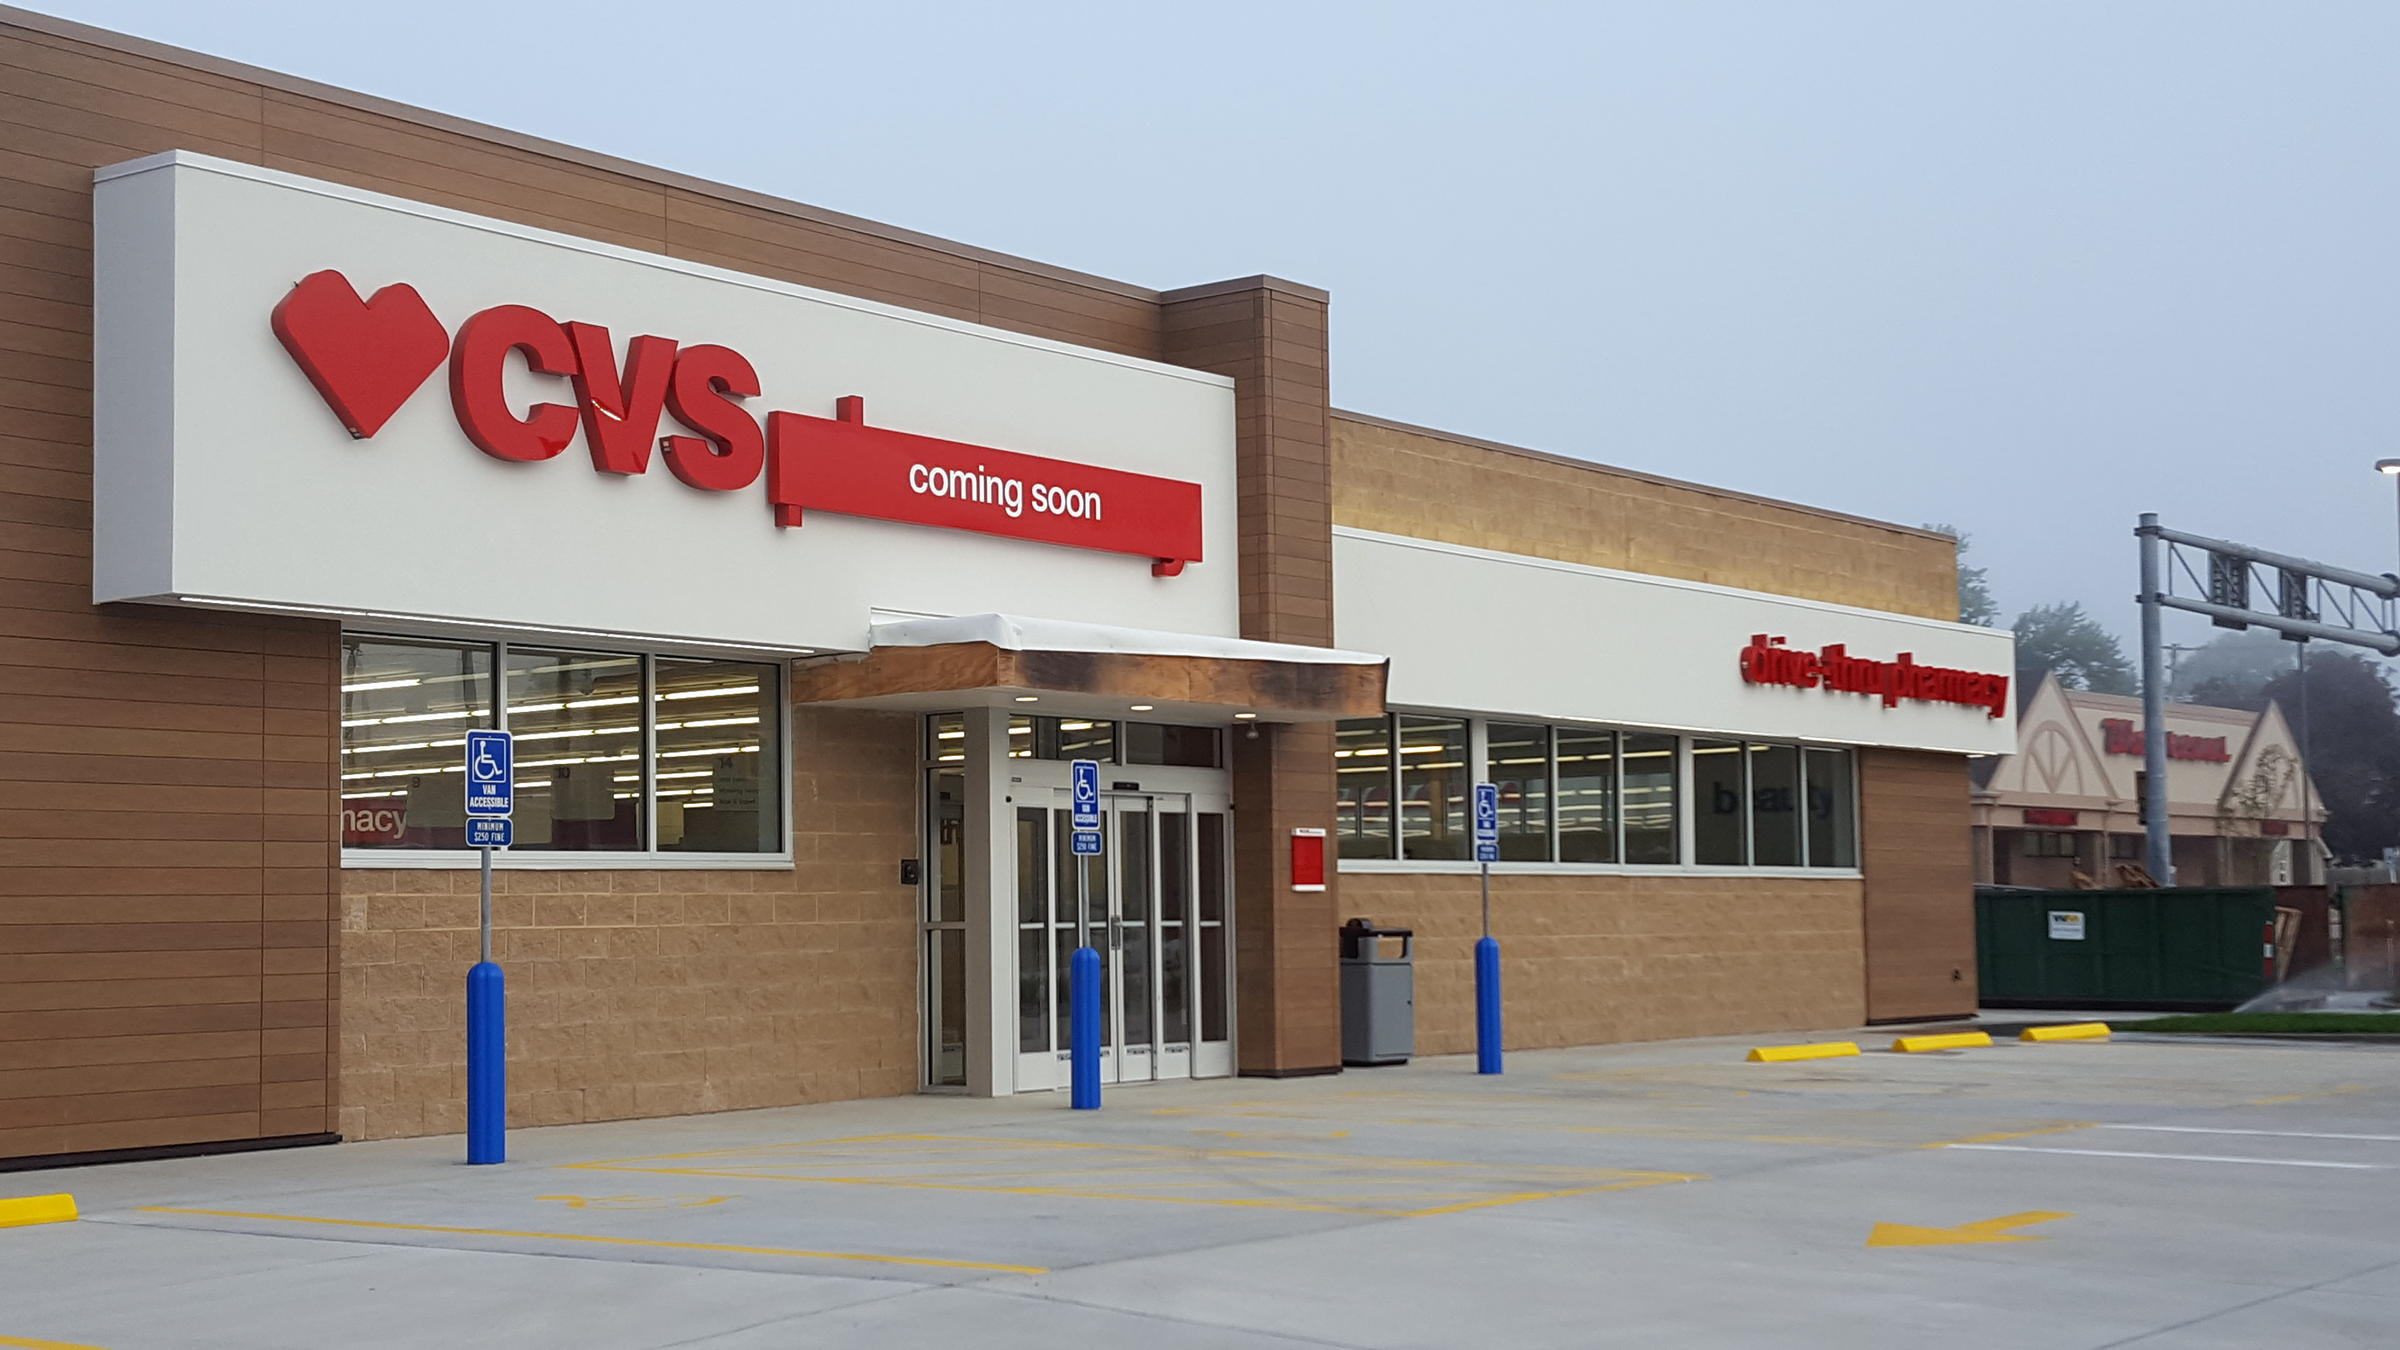 optimism abounds despite empty retail space in macomb